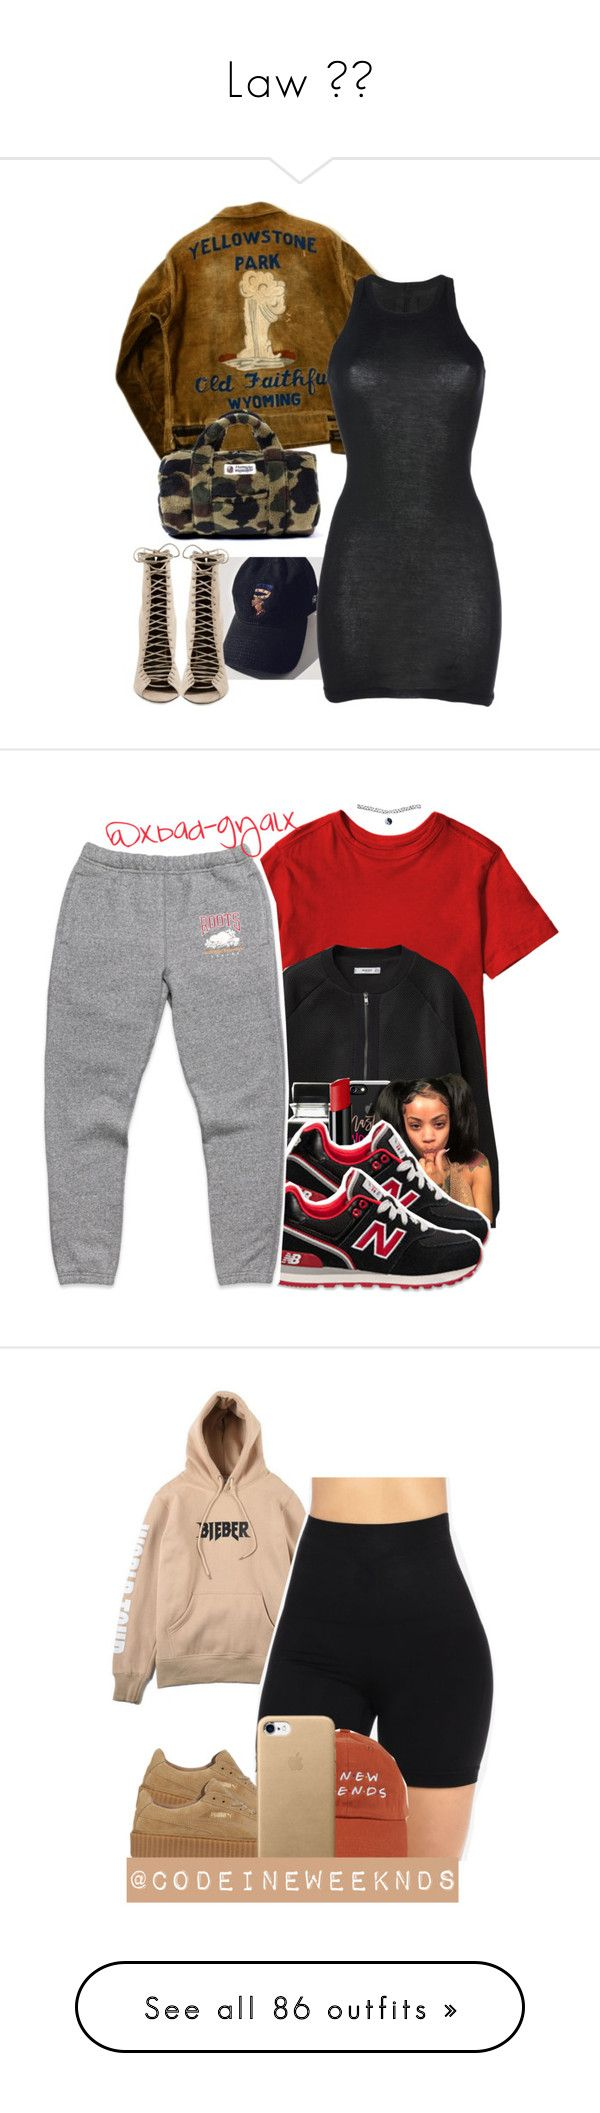 """Law 🉐💮"" by kiarra-jones ❤ liked on Polyvore featuring DRKSHDW, Kendall + Kylie, MANGO, Casetify, Le Métier de Beauté, New Balance, Wet Seal, Justin Bieber, Puma and Cheap Monday"